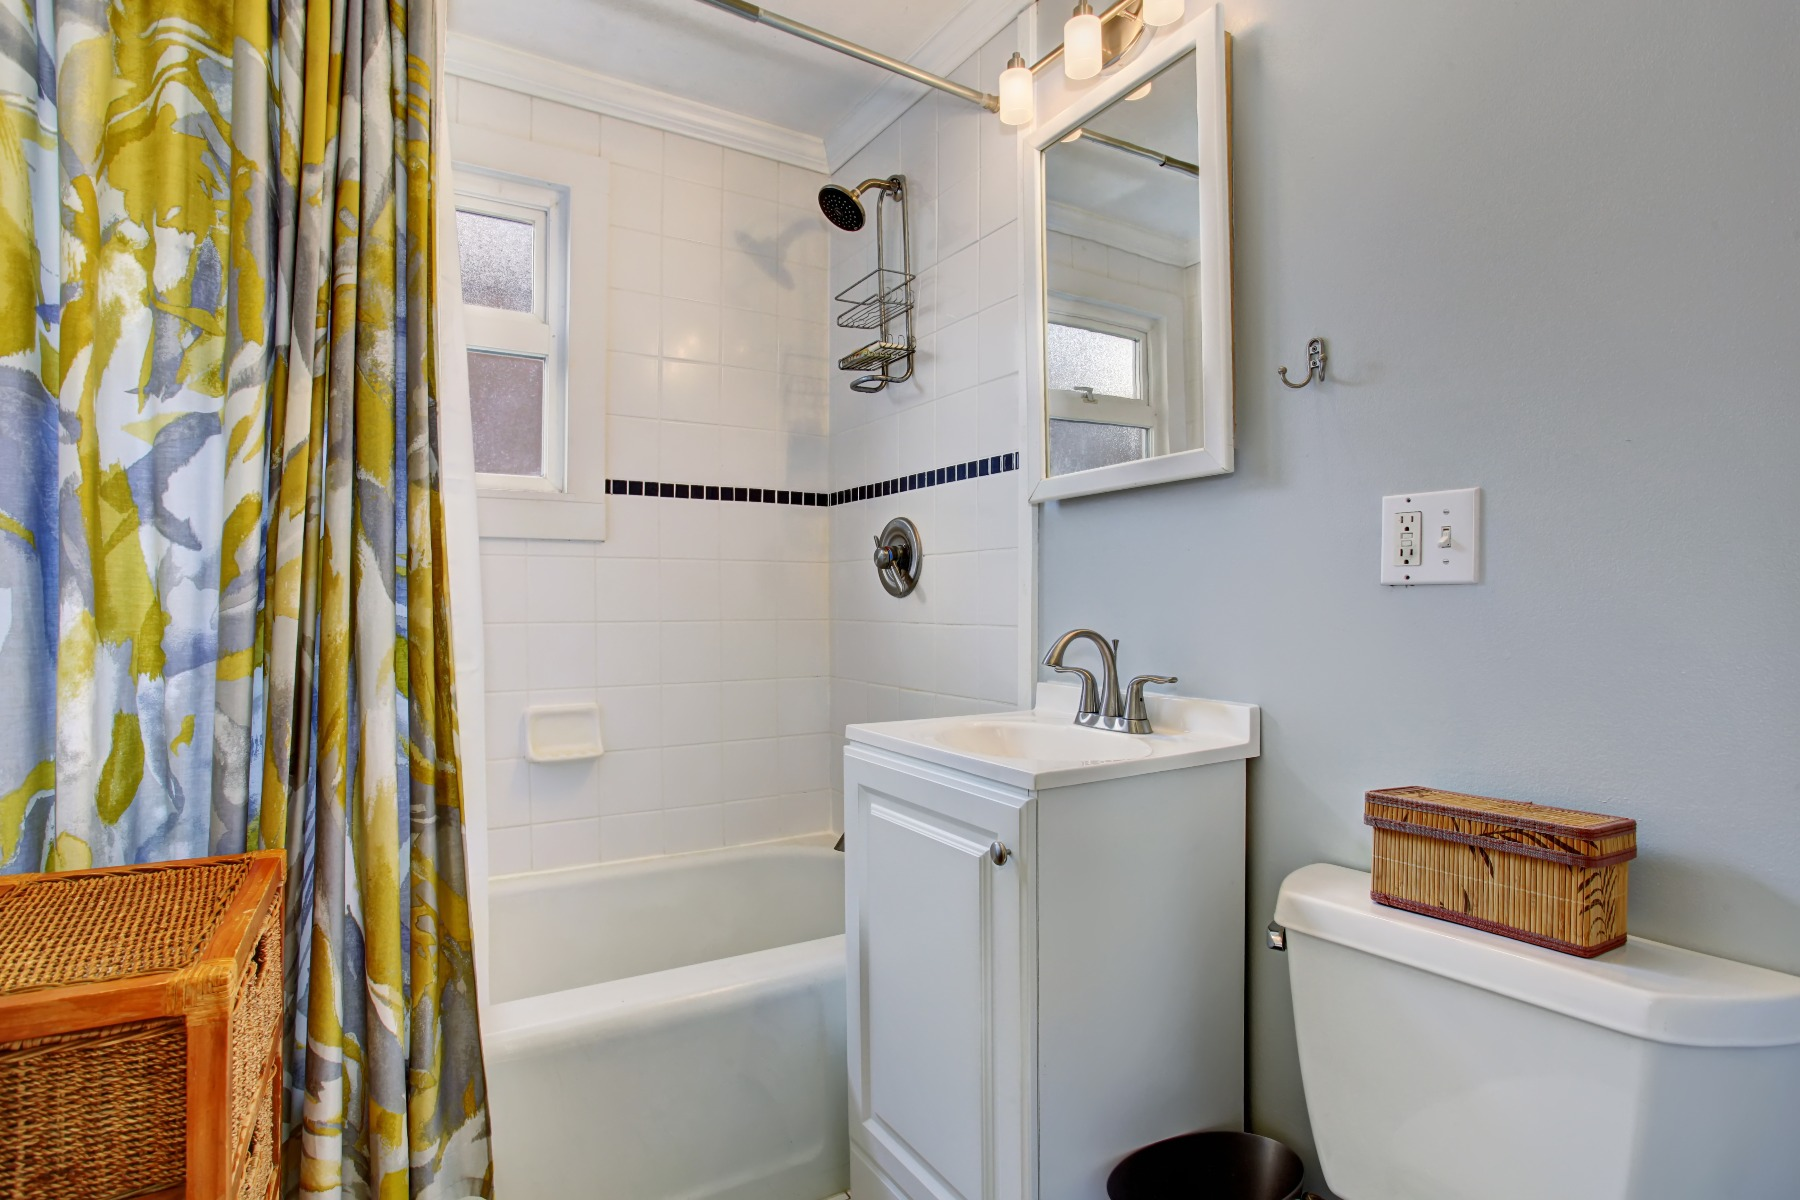 A bathroom with a colorful shower curtain.